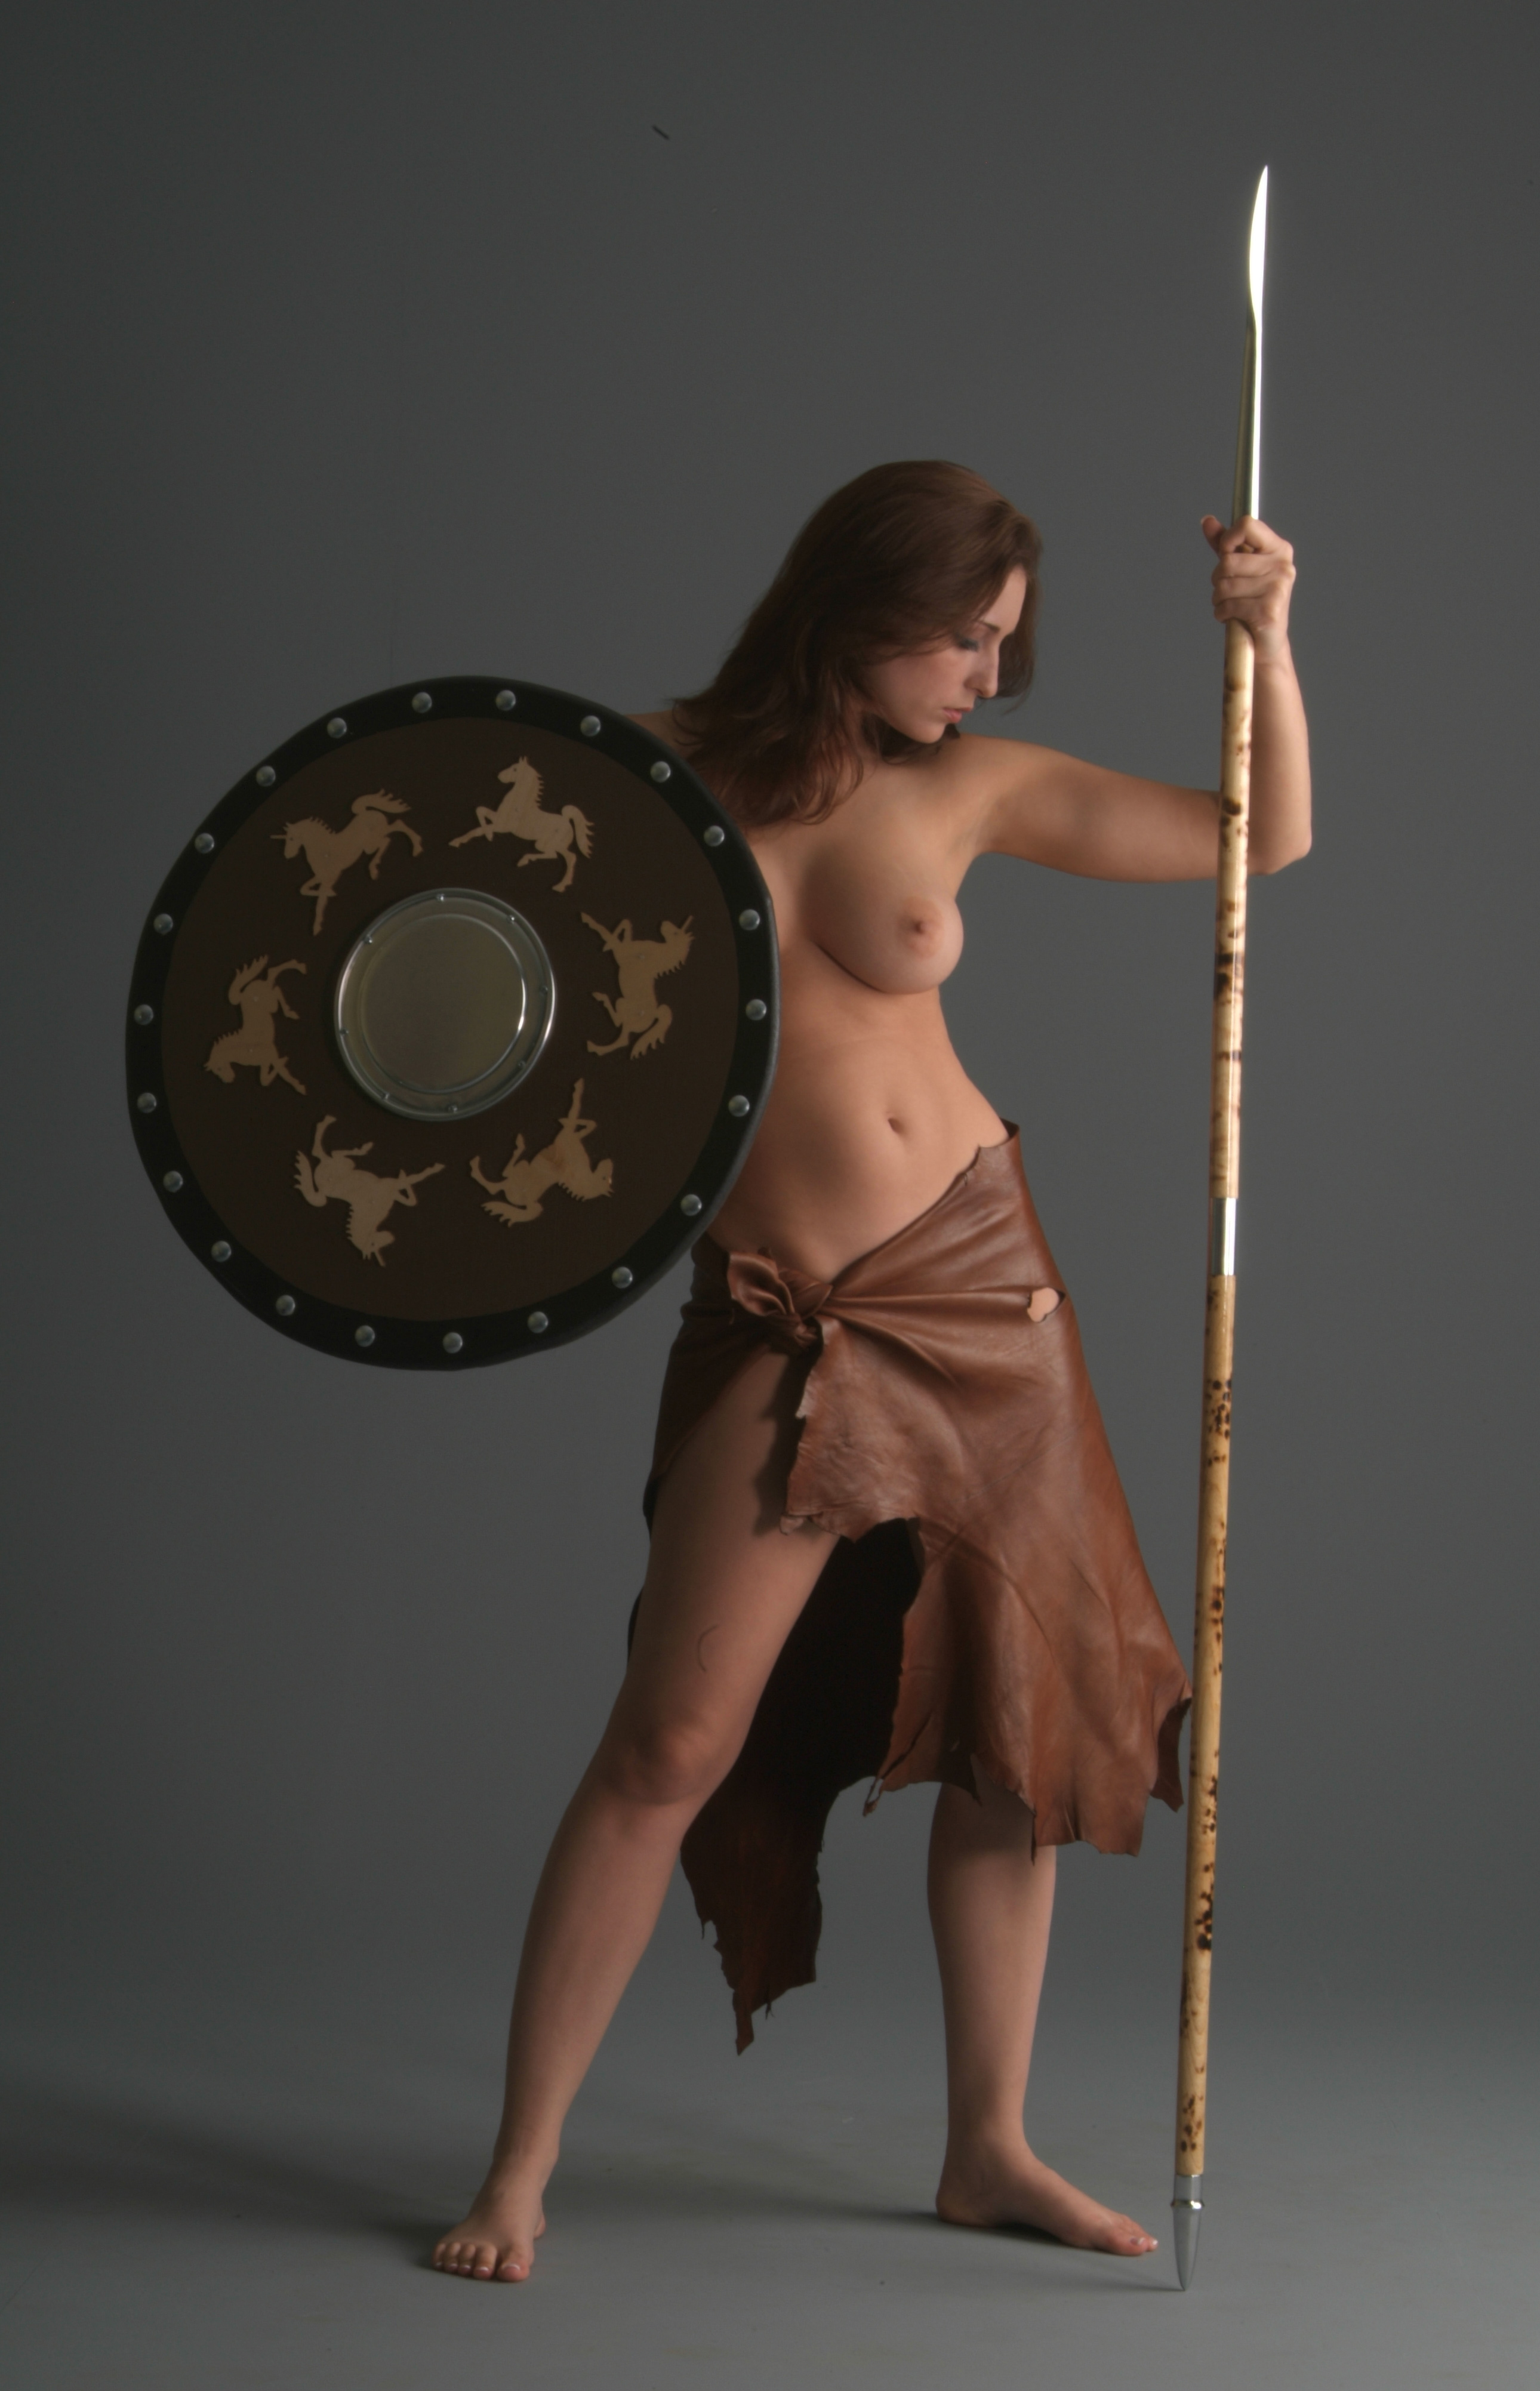 Sexy erotic warrior girls drawn pictures nude photos